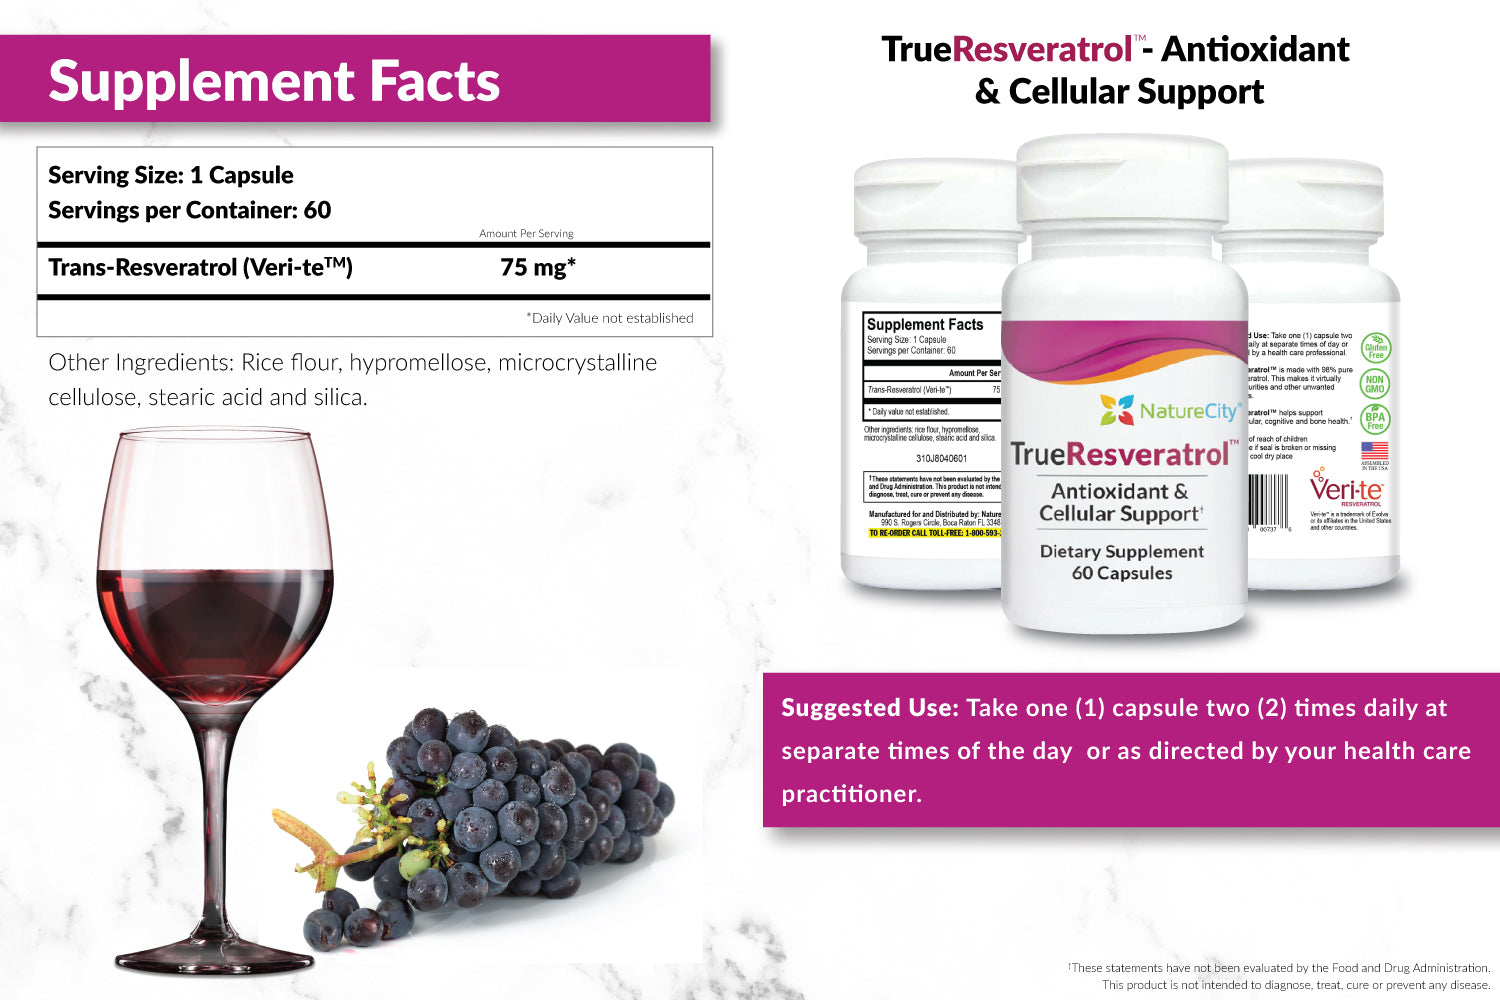 TrueResveratrol Supplement Facts and Suggested Use